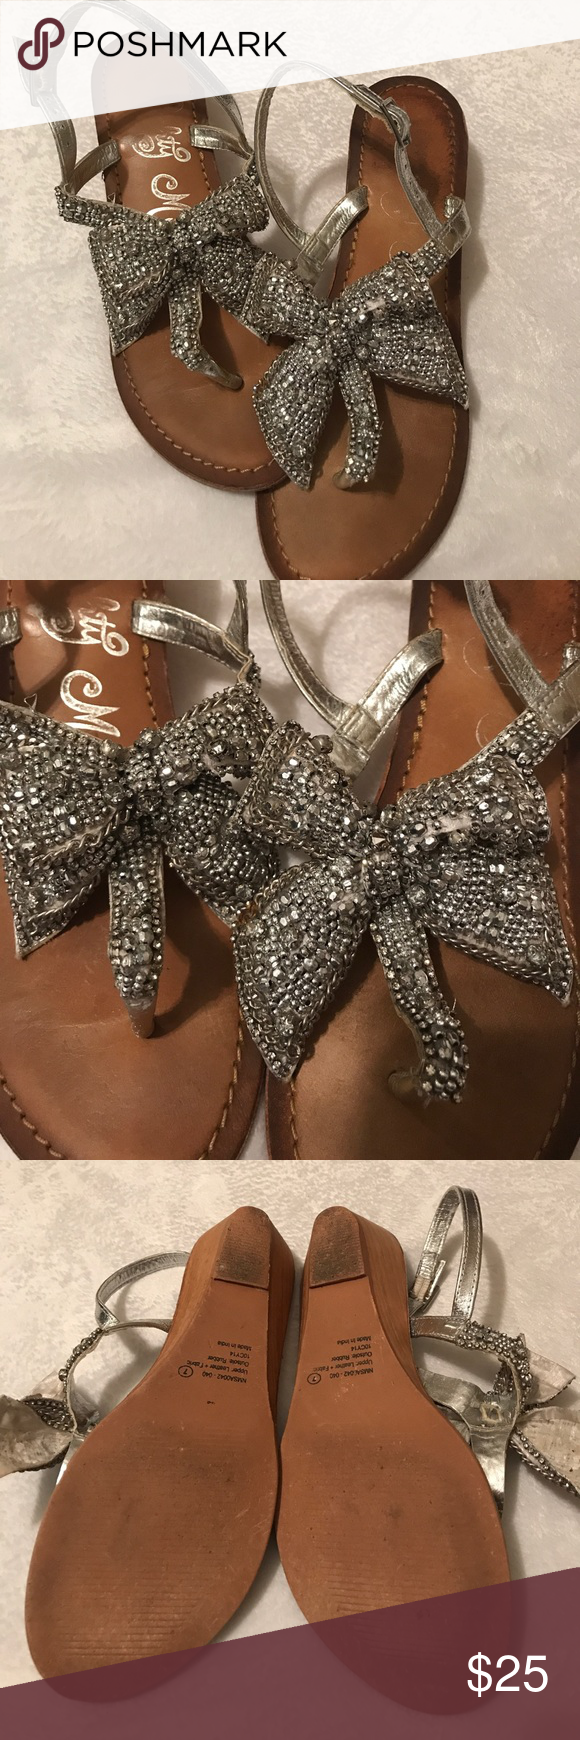 6070869becf90a Rhinestone bow sandals Naughty Monkey brand bow rhinestone sandals. Size 7. Great  overall condition a few little mishaps with a couple rhinestones which you  ...